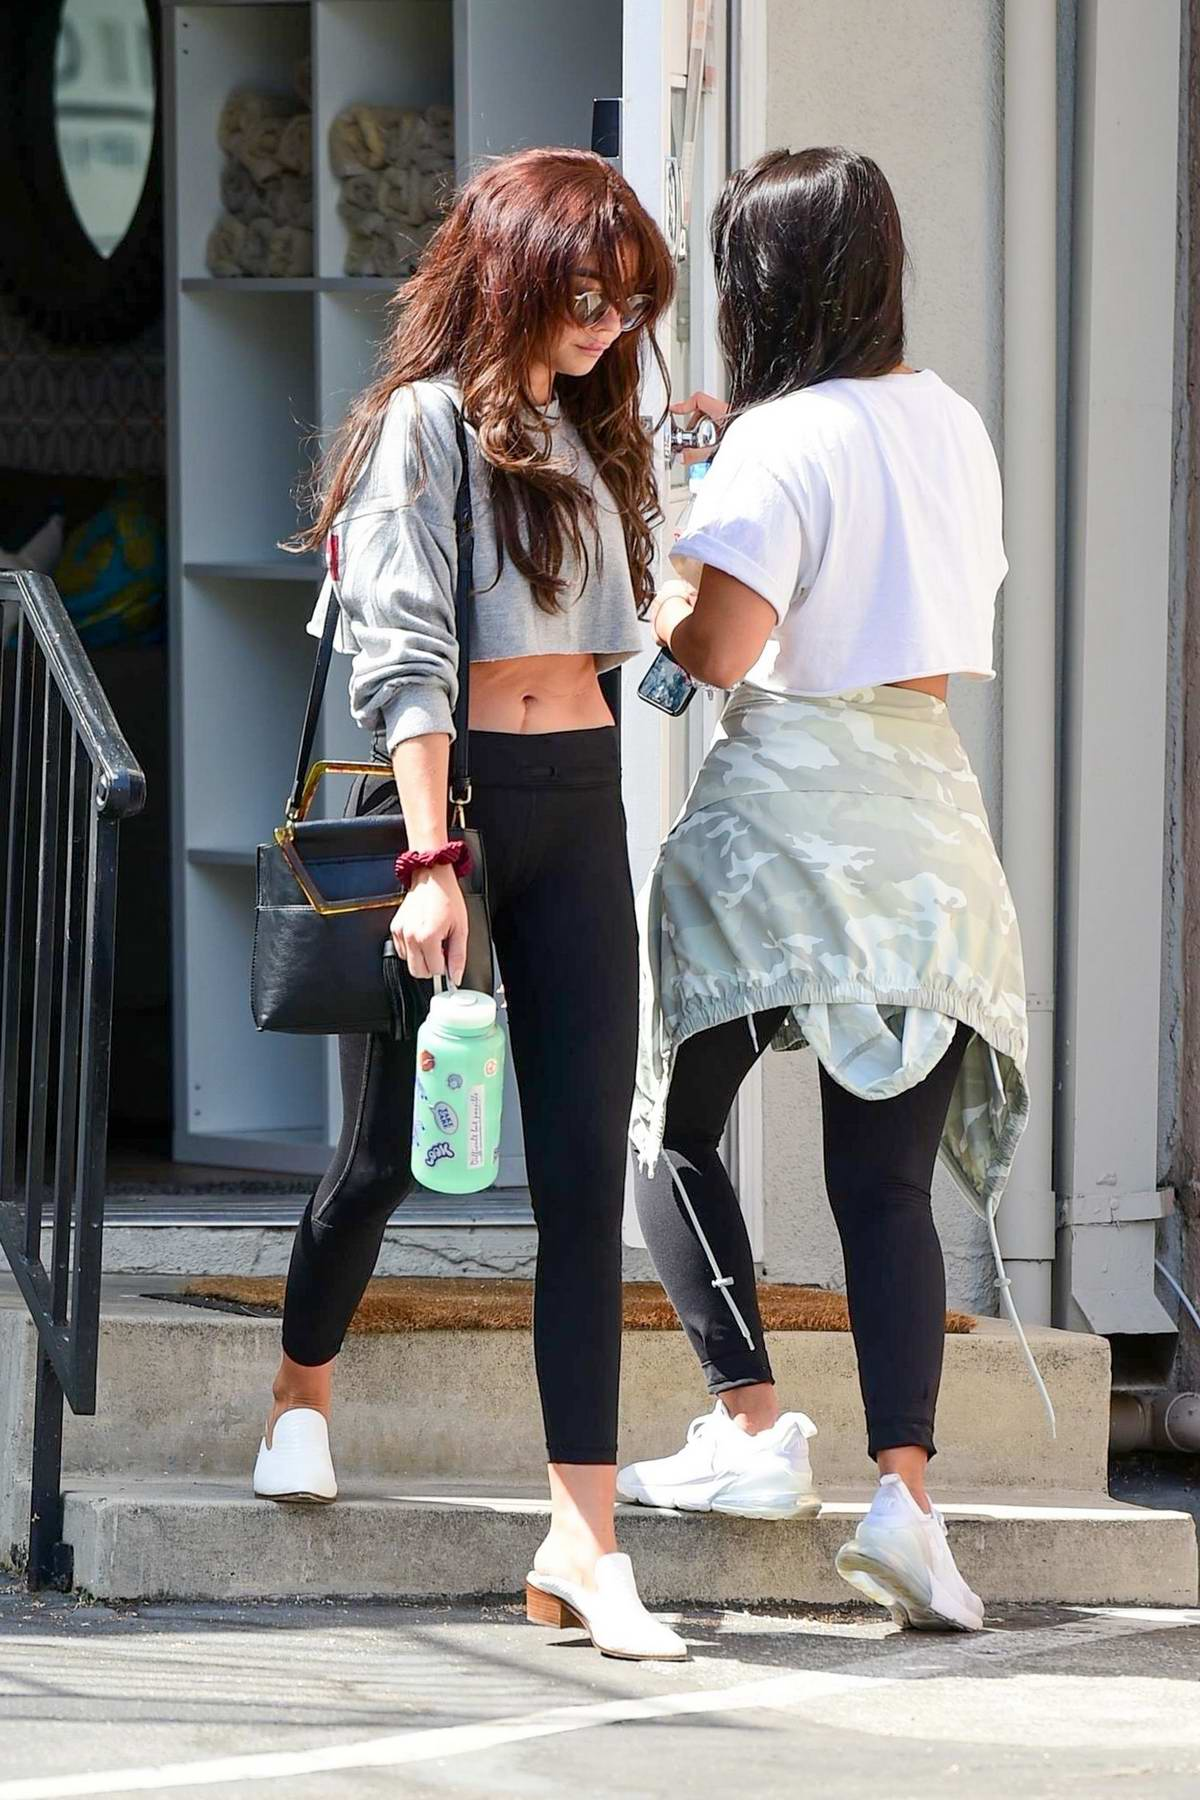 Sarah Hyland flashes her abs as she leaves the gym after her workout in Studio City, Los Angeles